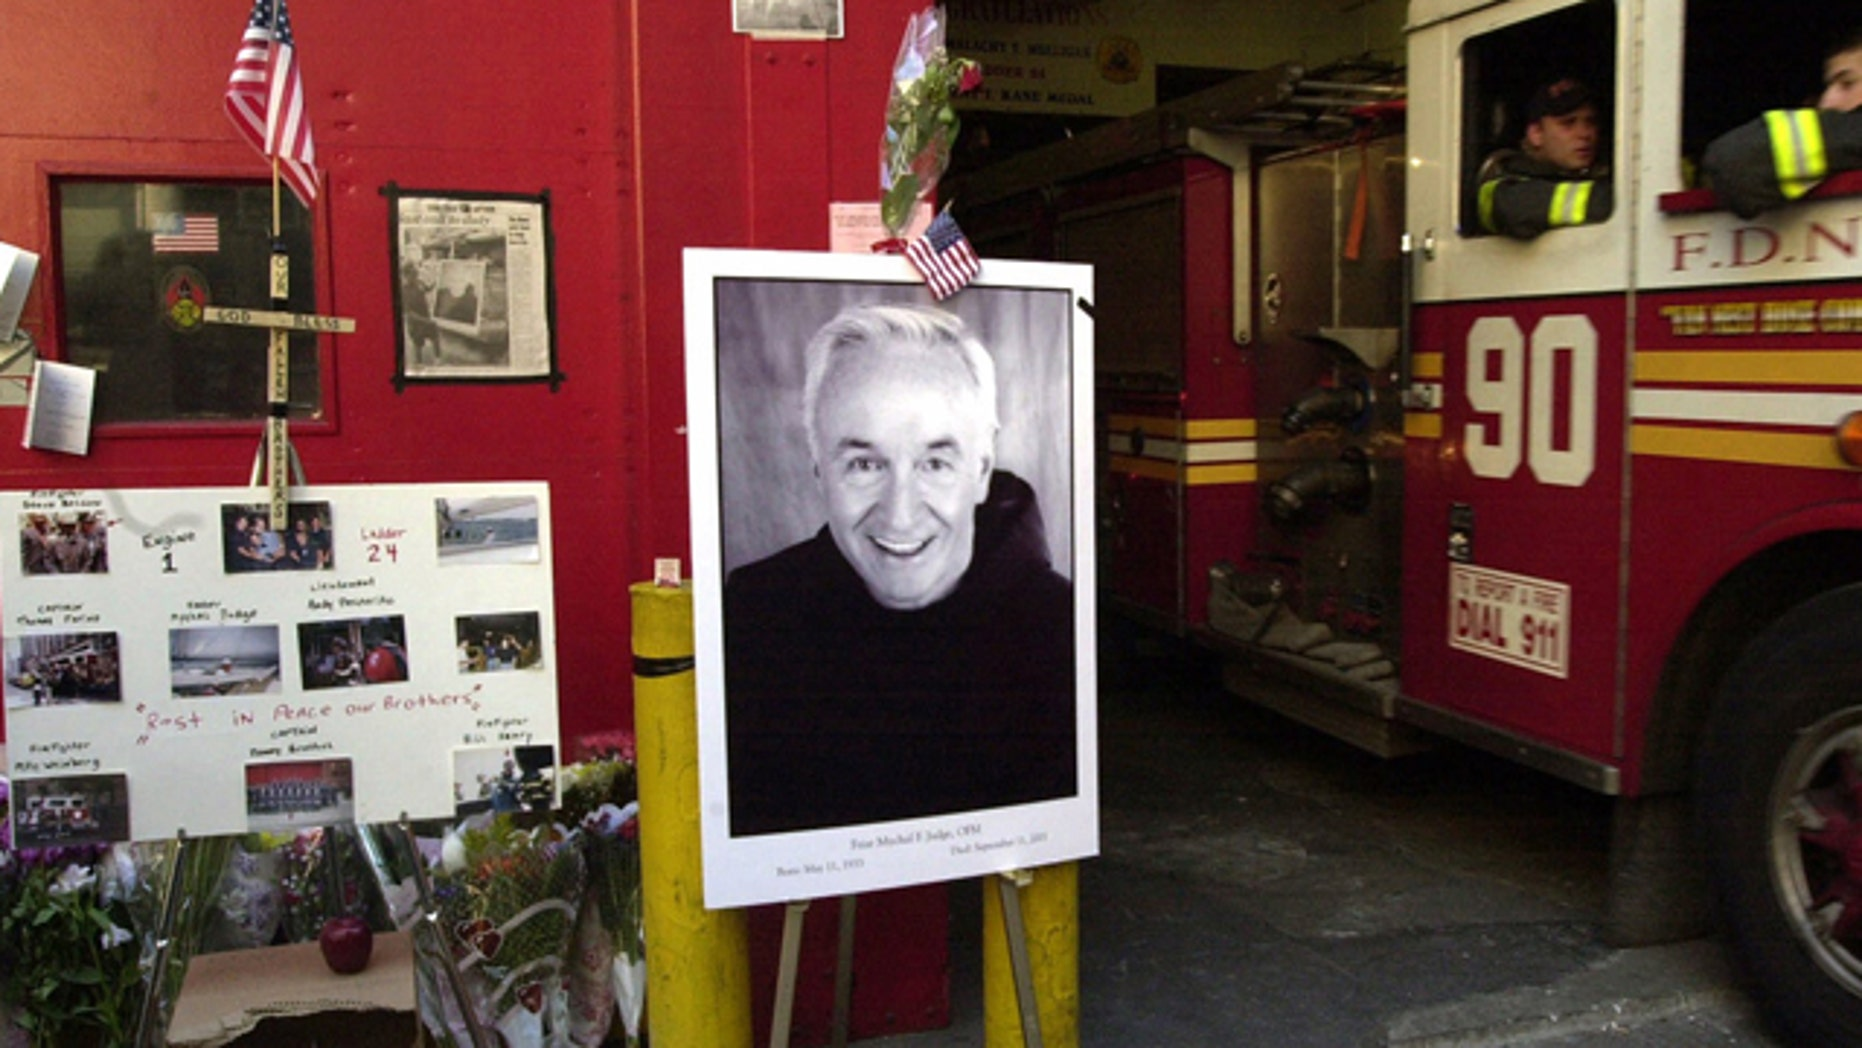 FILE: Memorial for Mychal Judge, New York Fire Department chaplain, and other firefighters lost in World Trade Center attack.